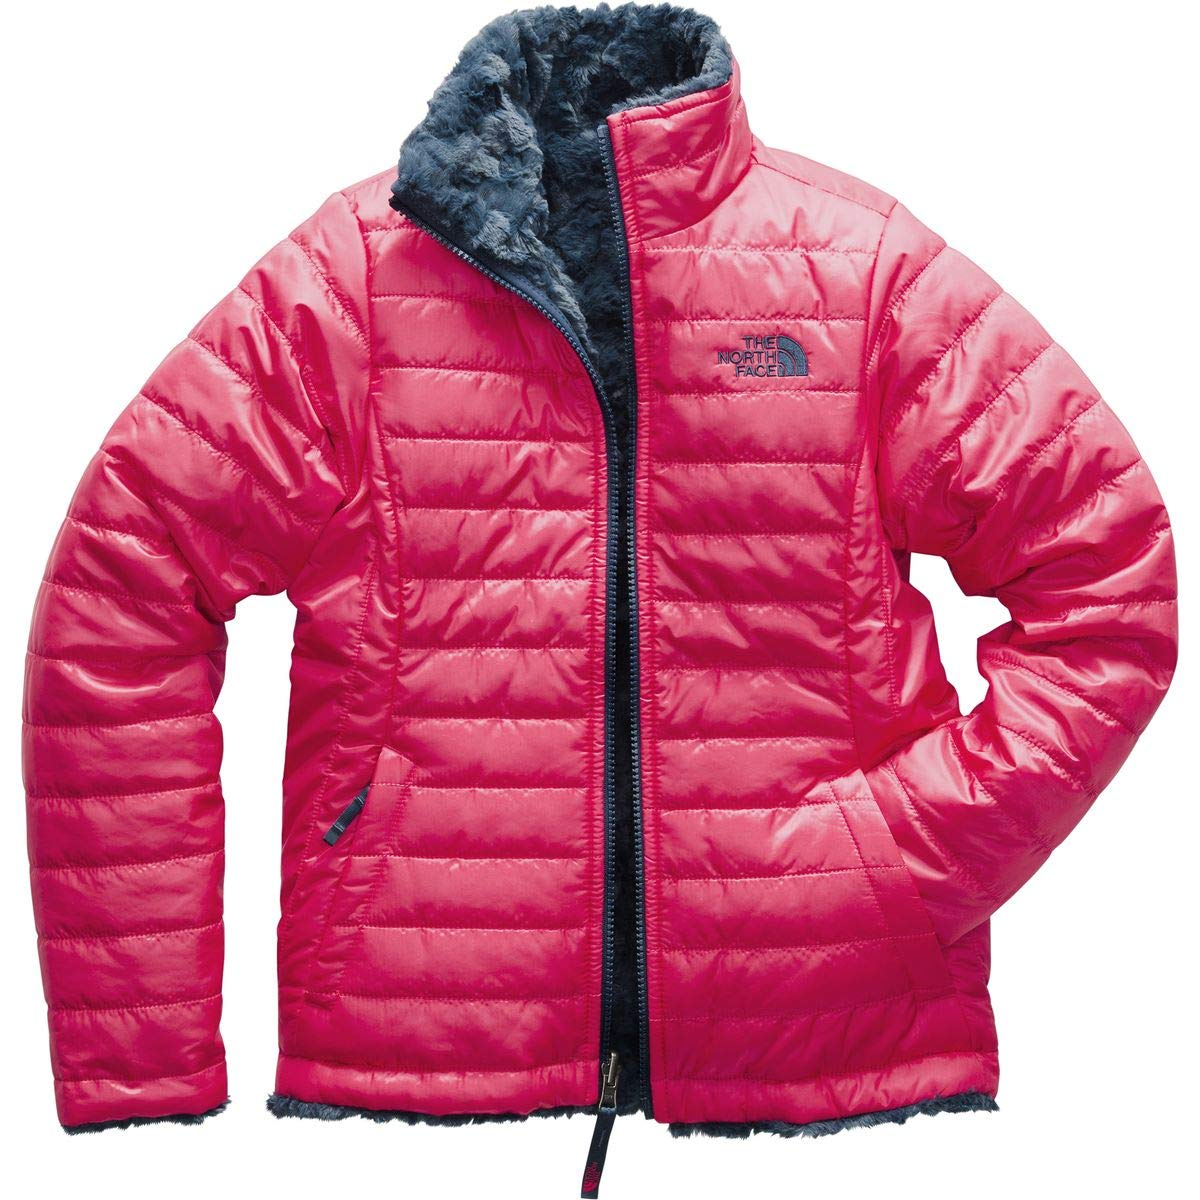 THE NORTH FACE G Rev S Jkt Chaqueta Reversible Mossbud Swirl, Niñas